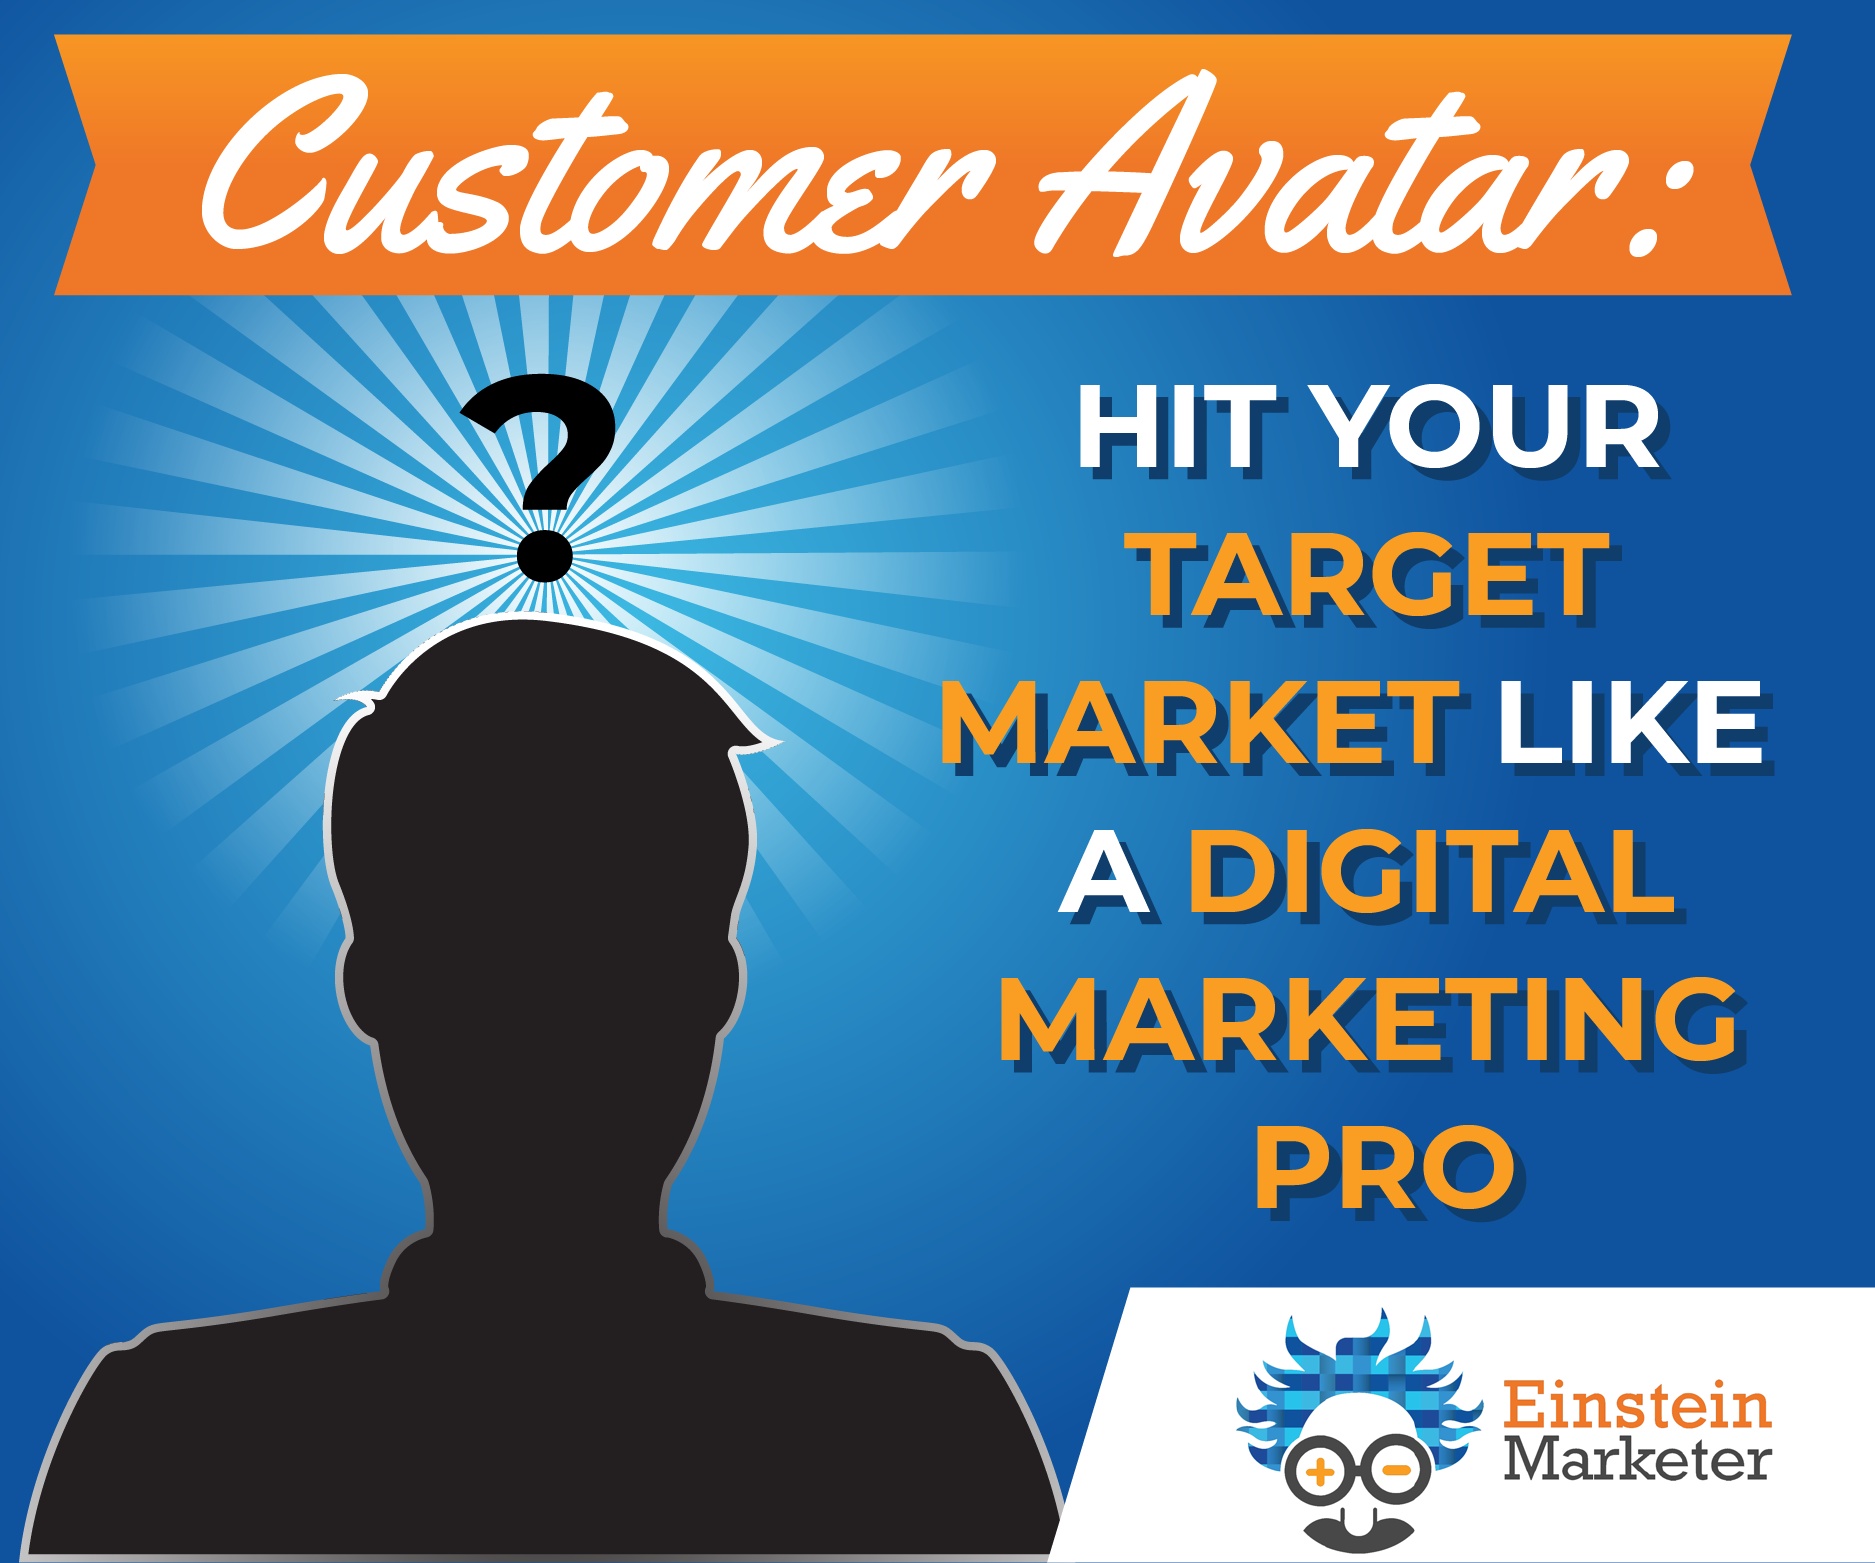 customer avatar retargeting